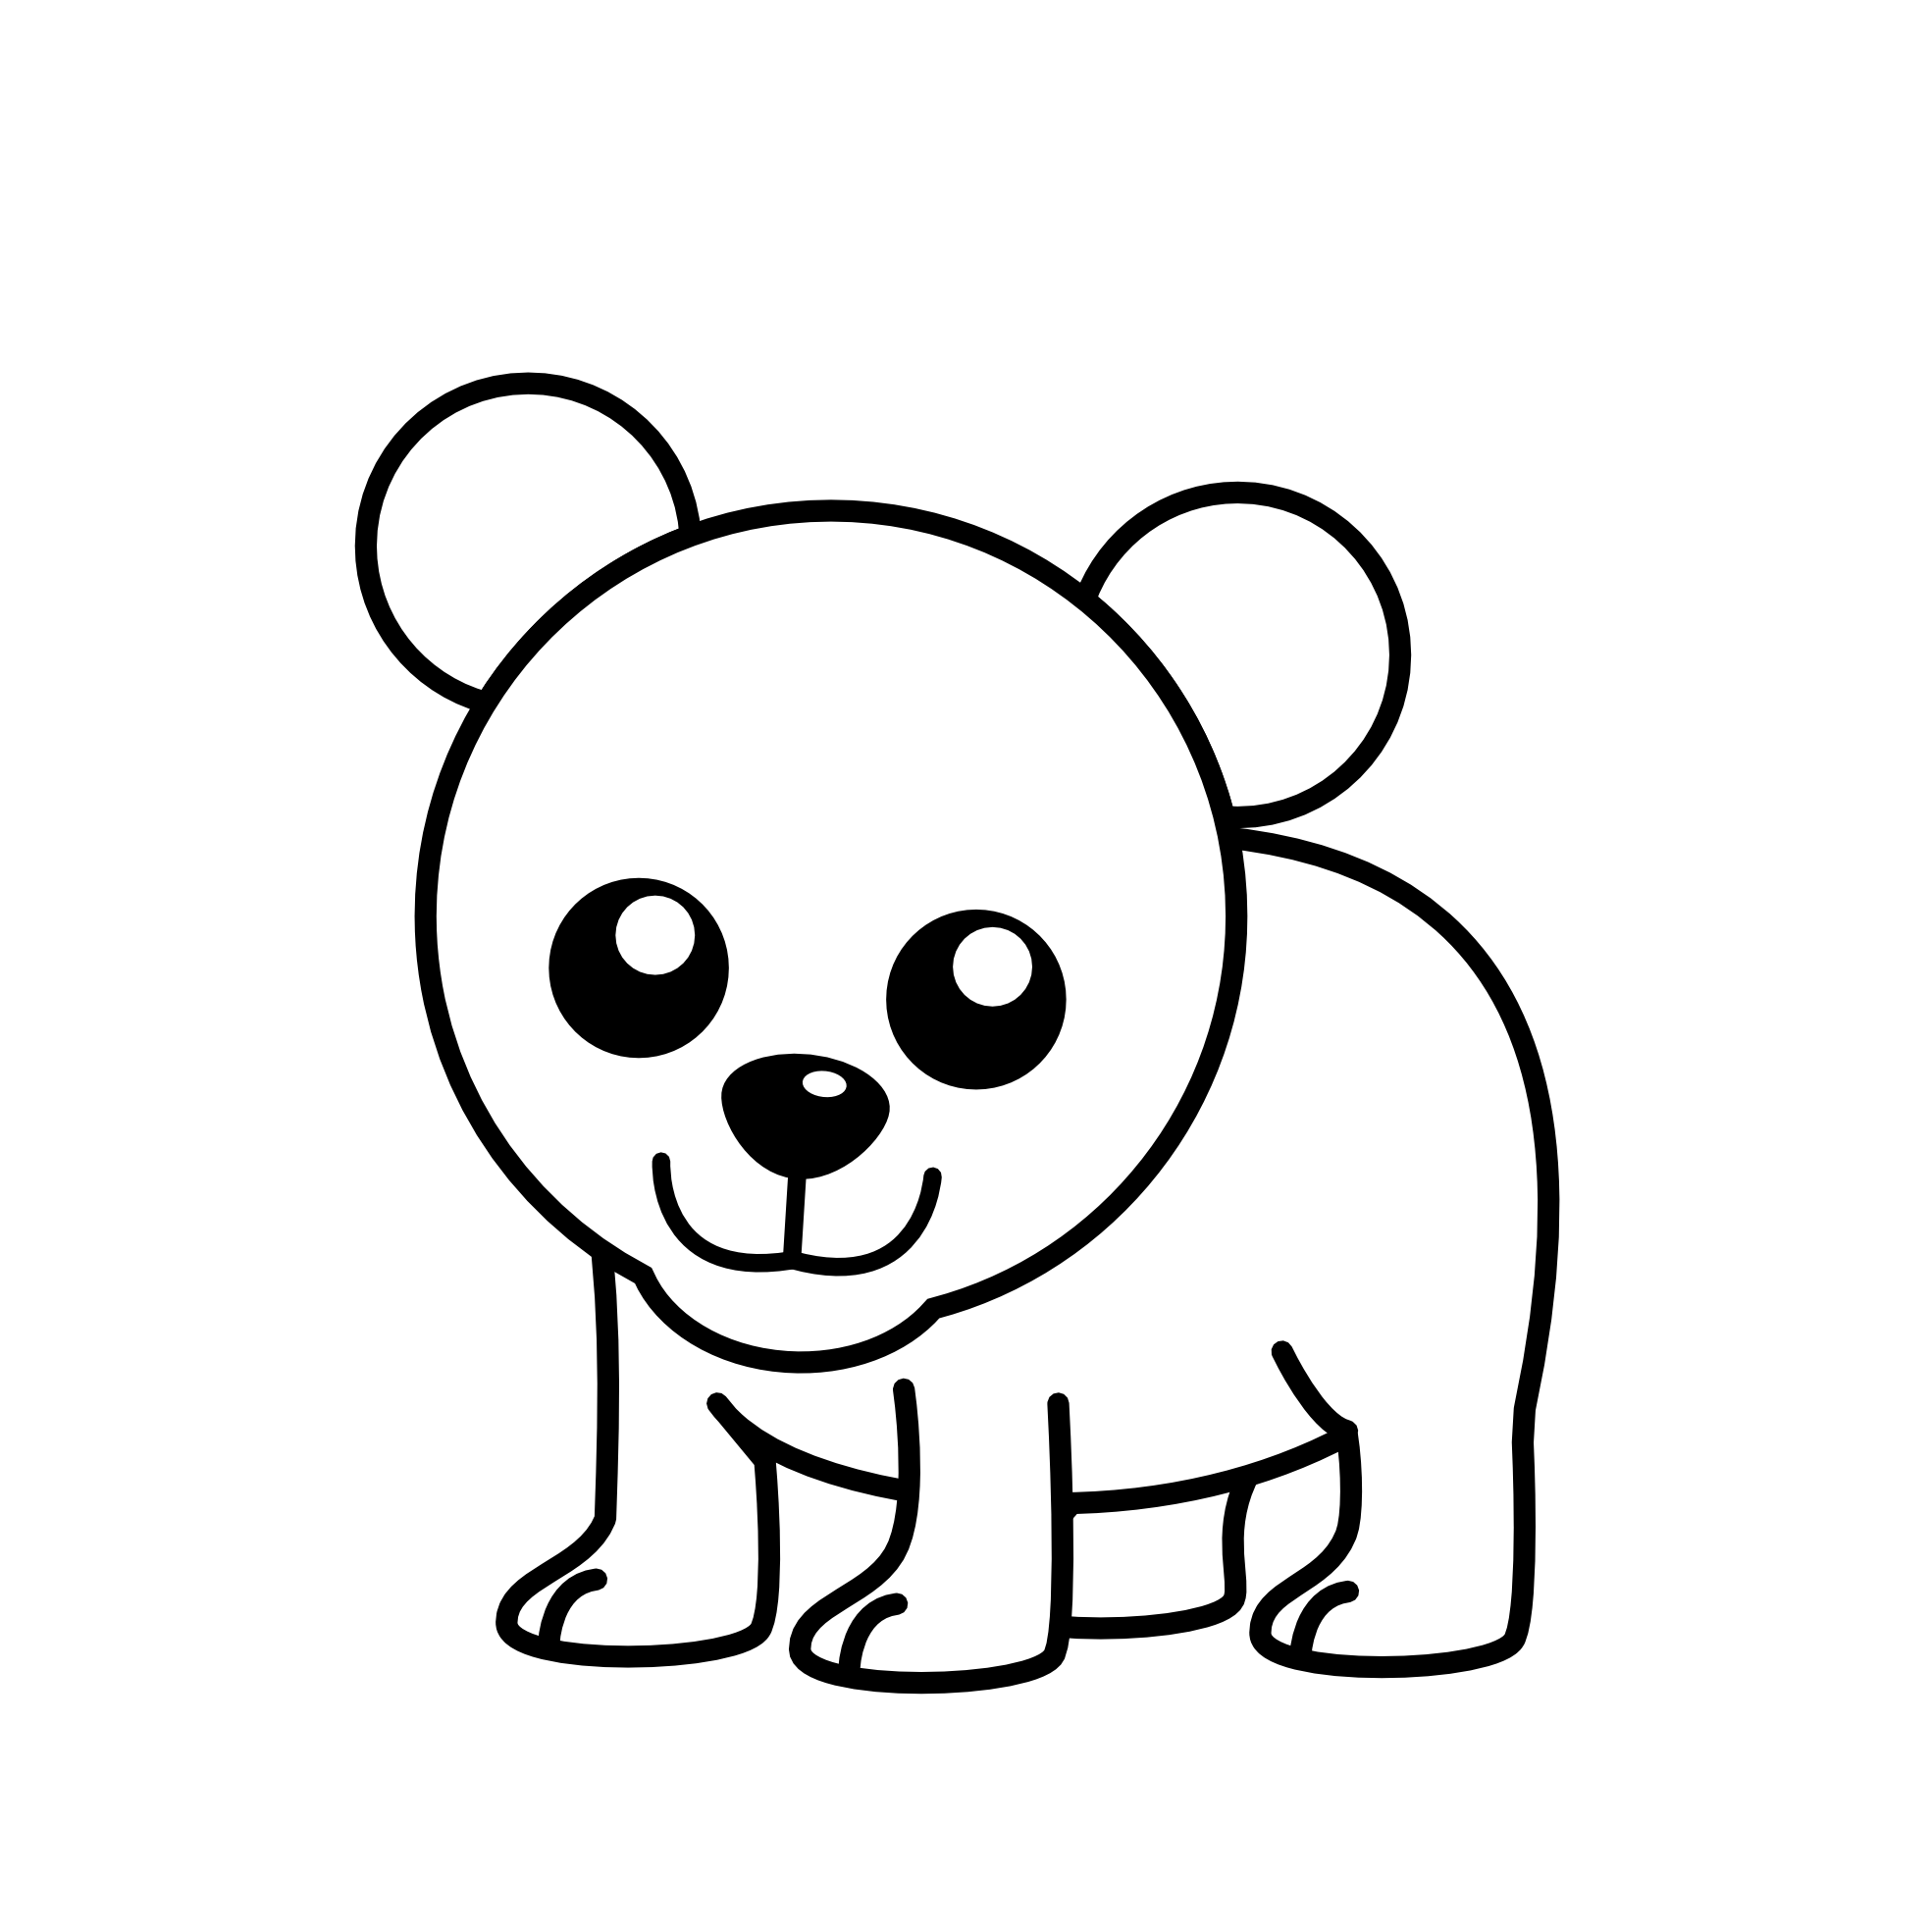 Simple polar bear pencil. Fridge clipart black and white